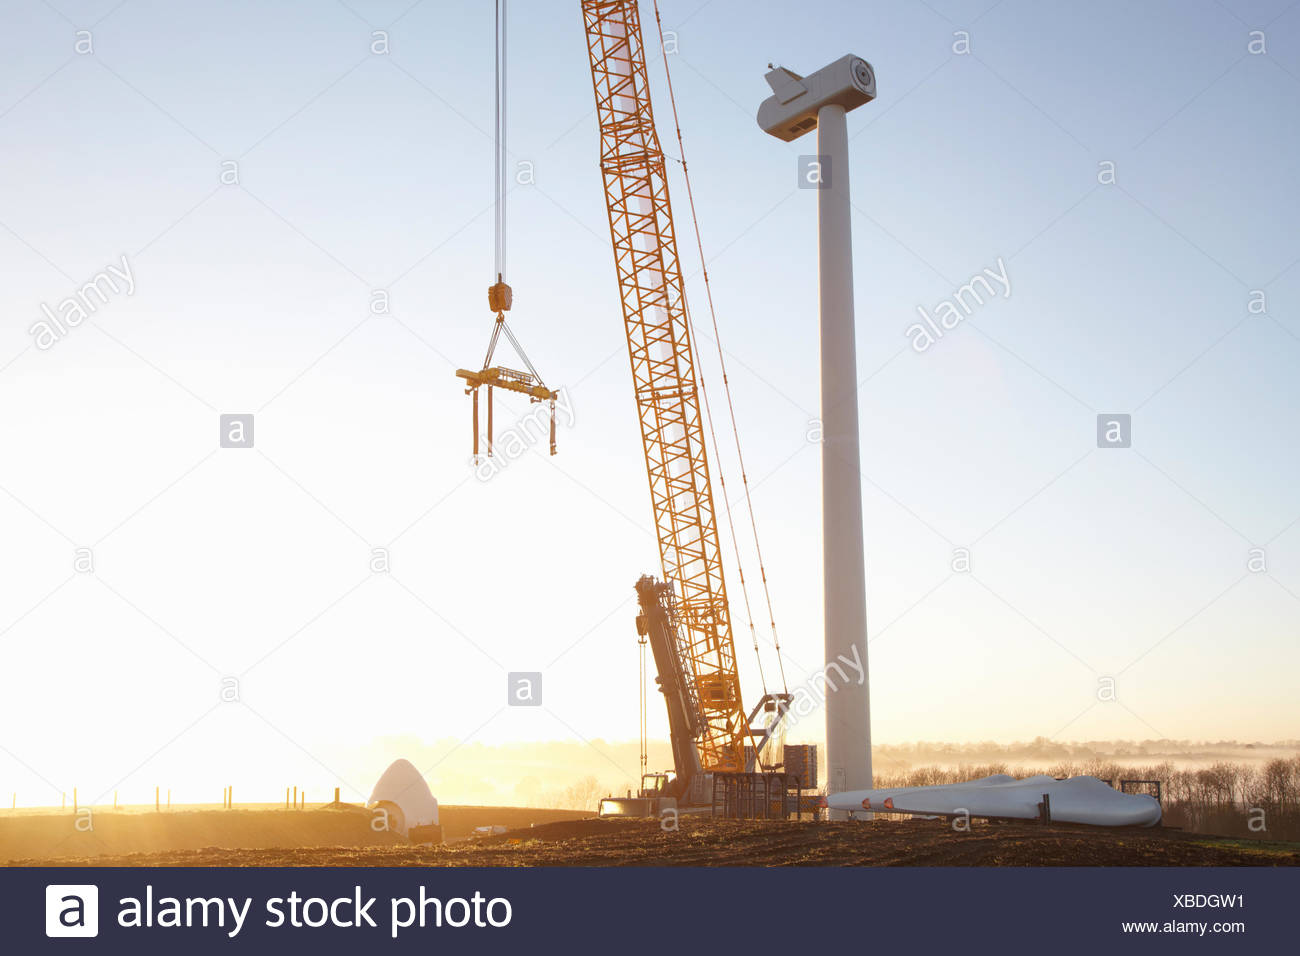 Wind turbine being erected - Stock Image